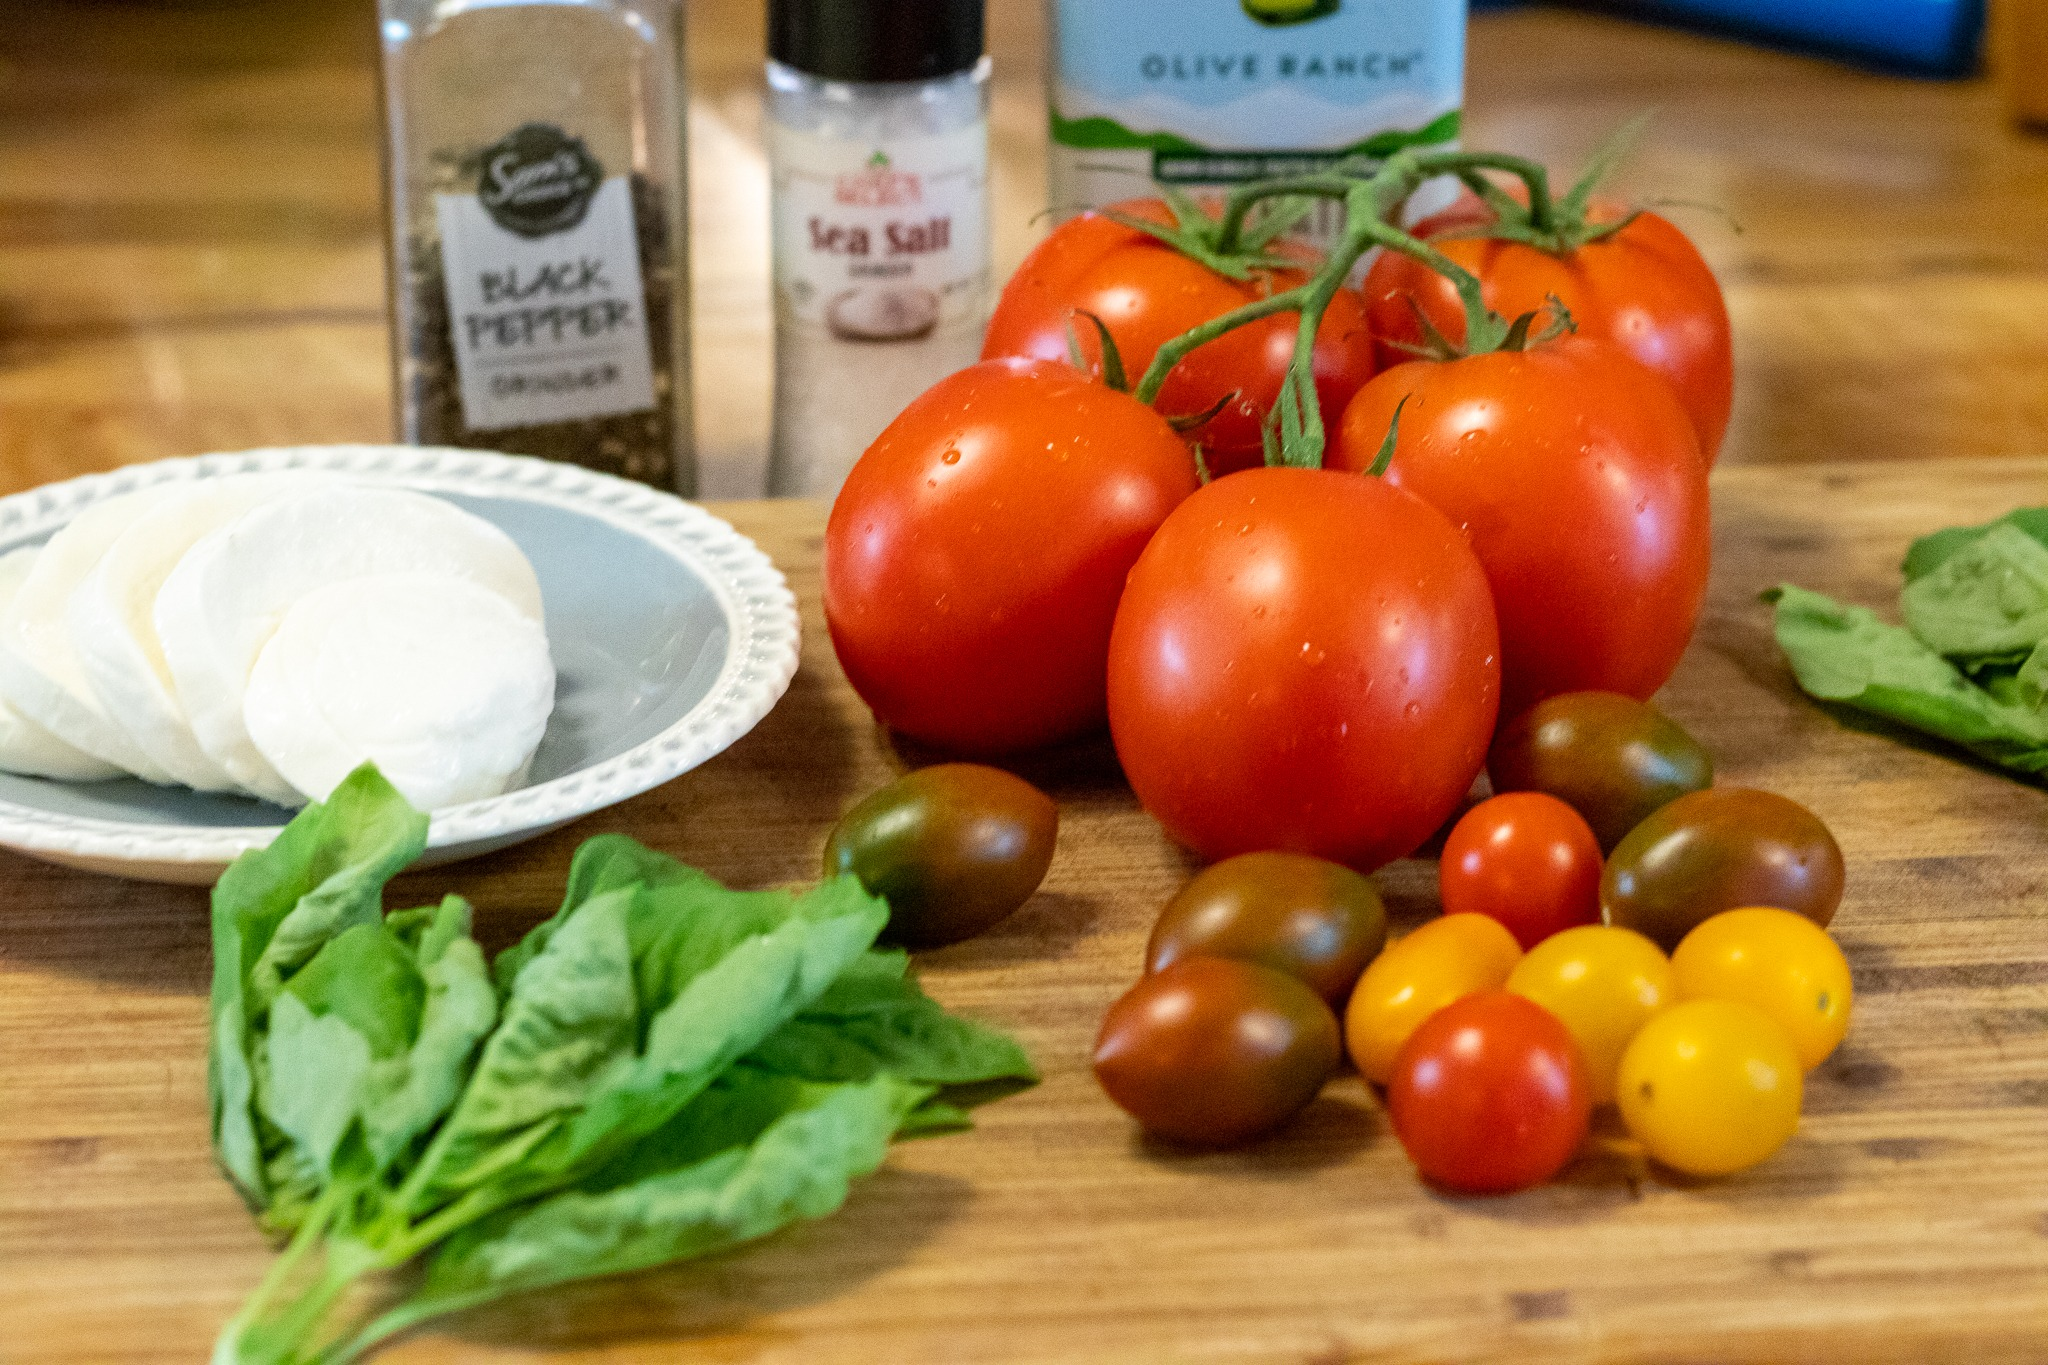 All the components for a perfect Caprese salad.